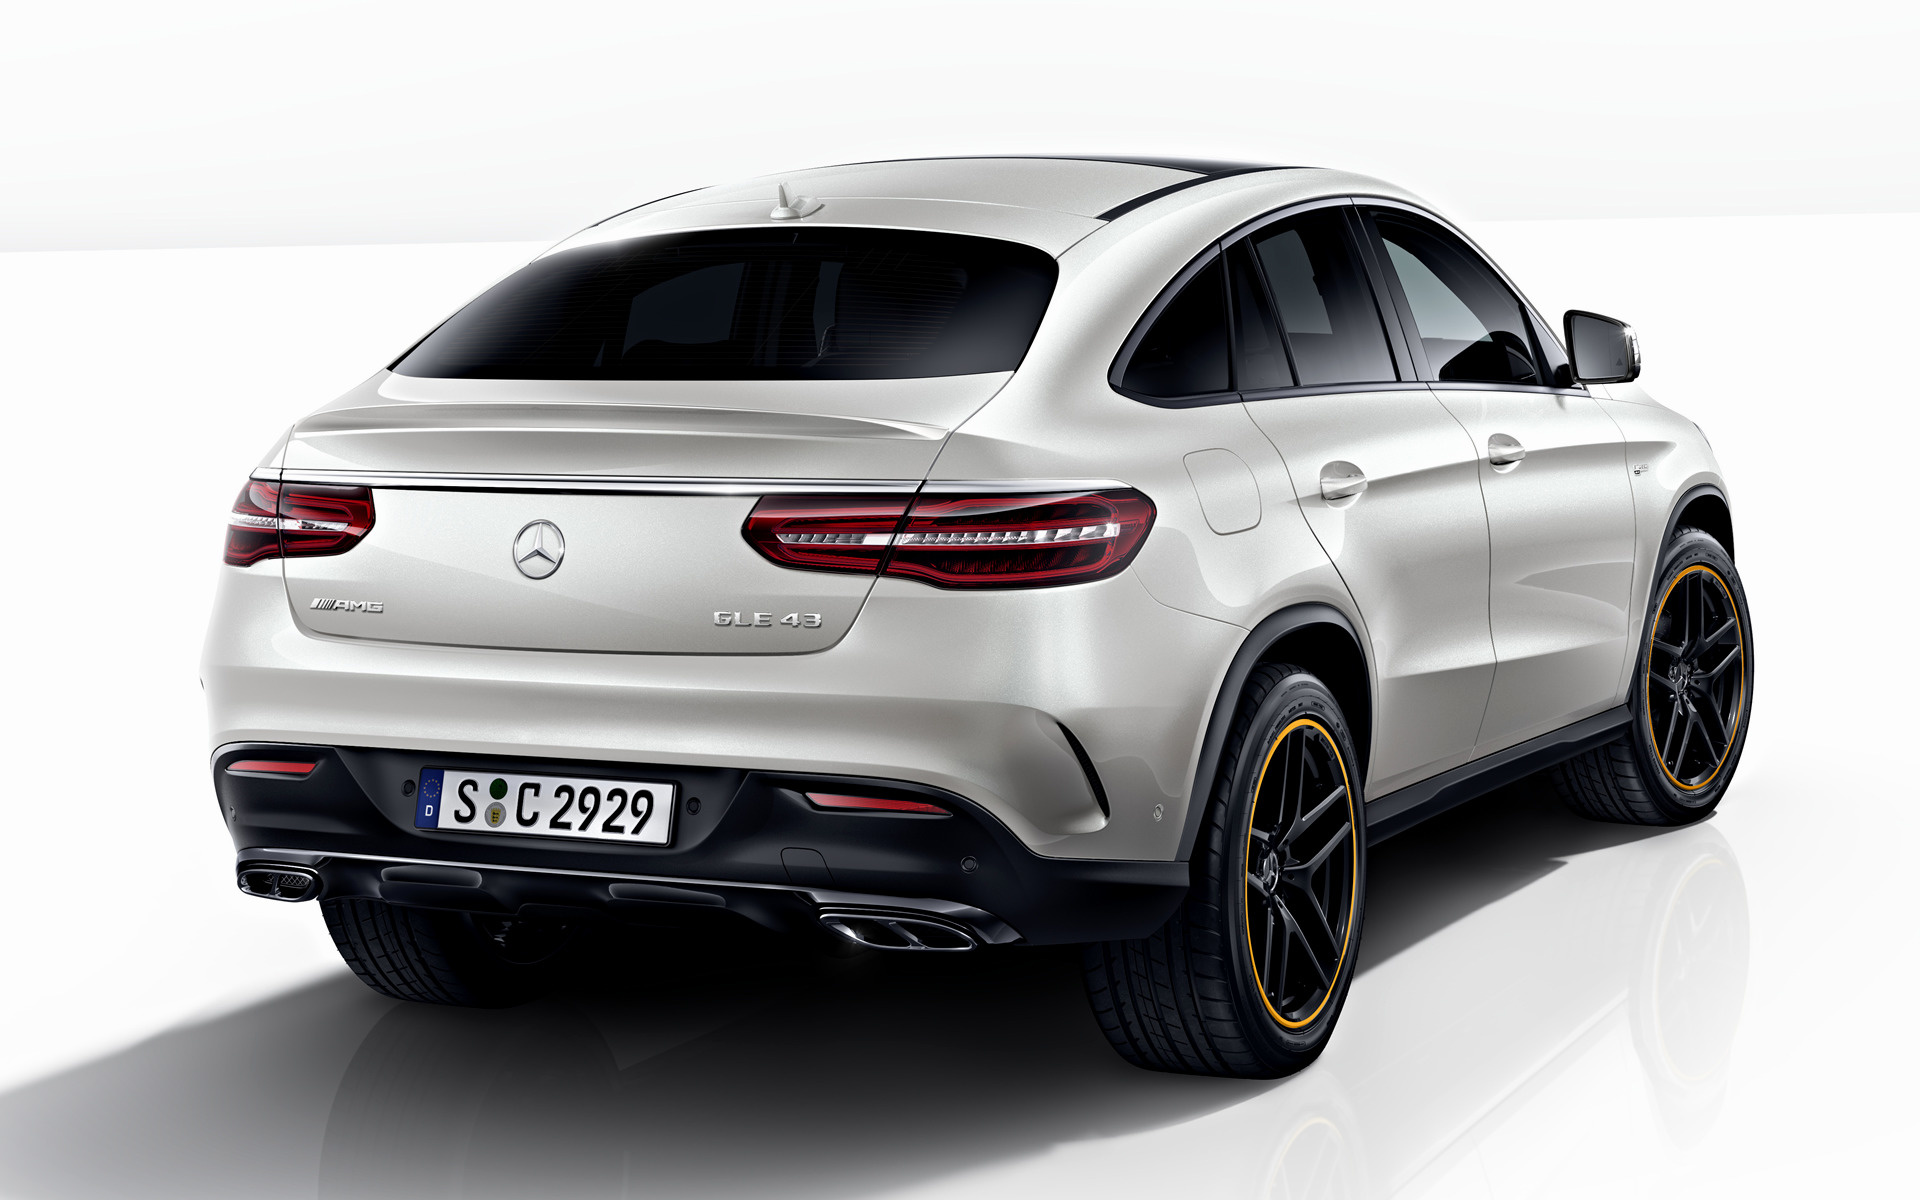 2017 Mercedes-AMG GLE 43 Coupe OrangeArt Edition - Wallpapers and HD Images | Car Pixel